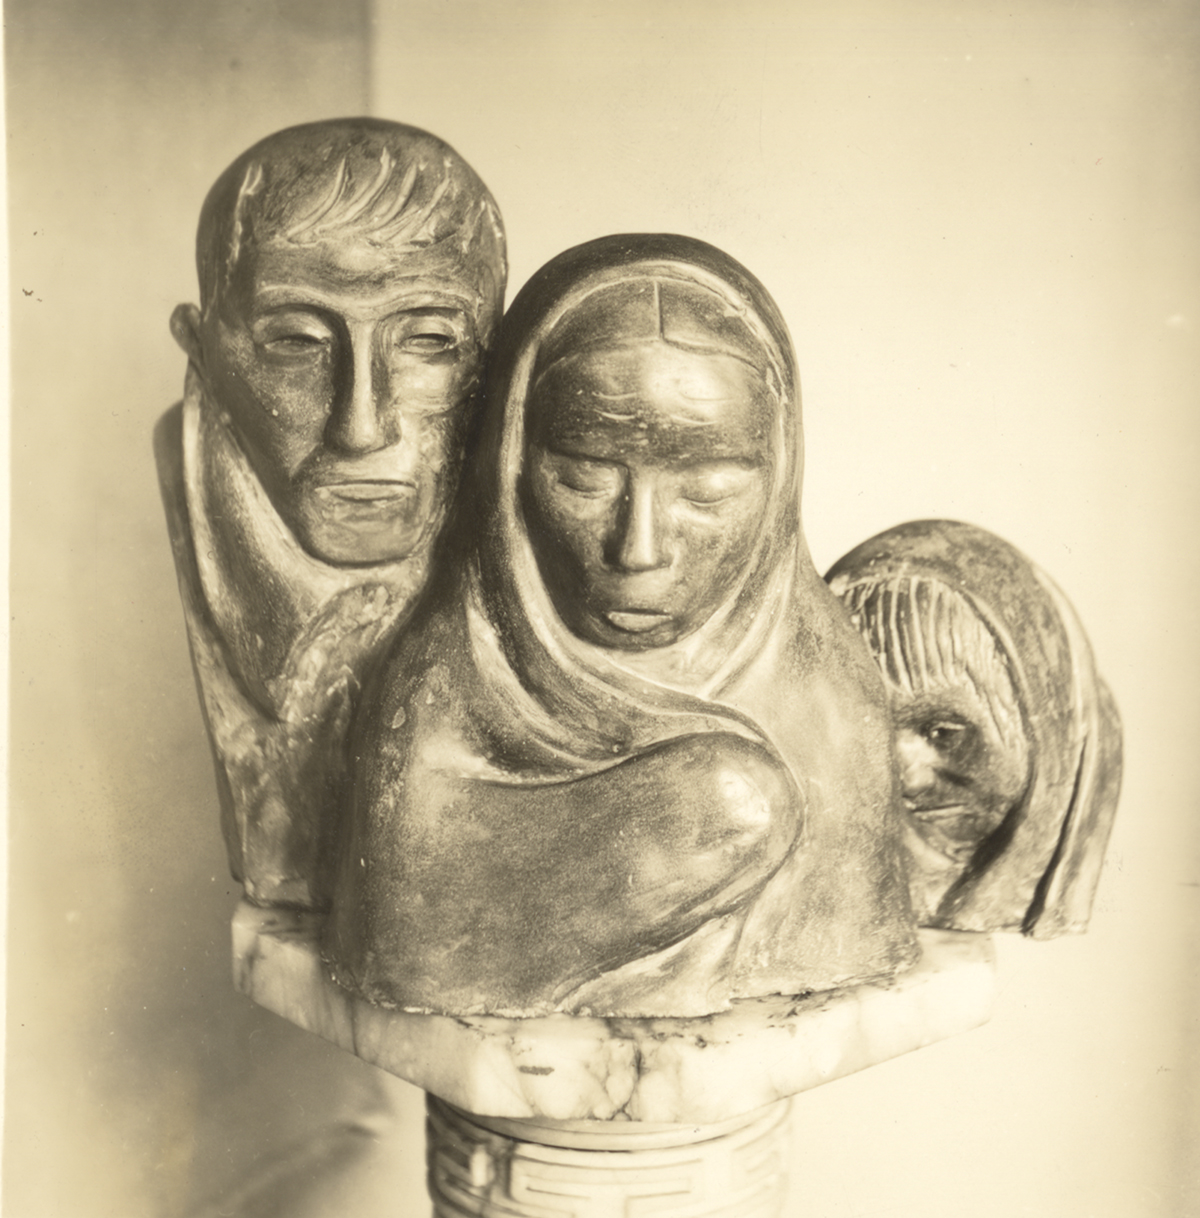 A photo of Sybil Barsky's work Refugees. Sibyl Barsky Grucci Photographs, MSP 423, Detre Library & Archives at the History Center. Gift of Sibyl Barsky Grucci.